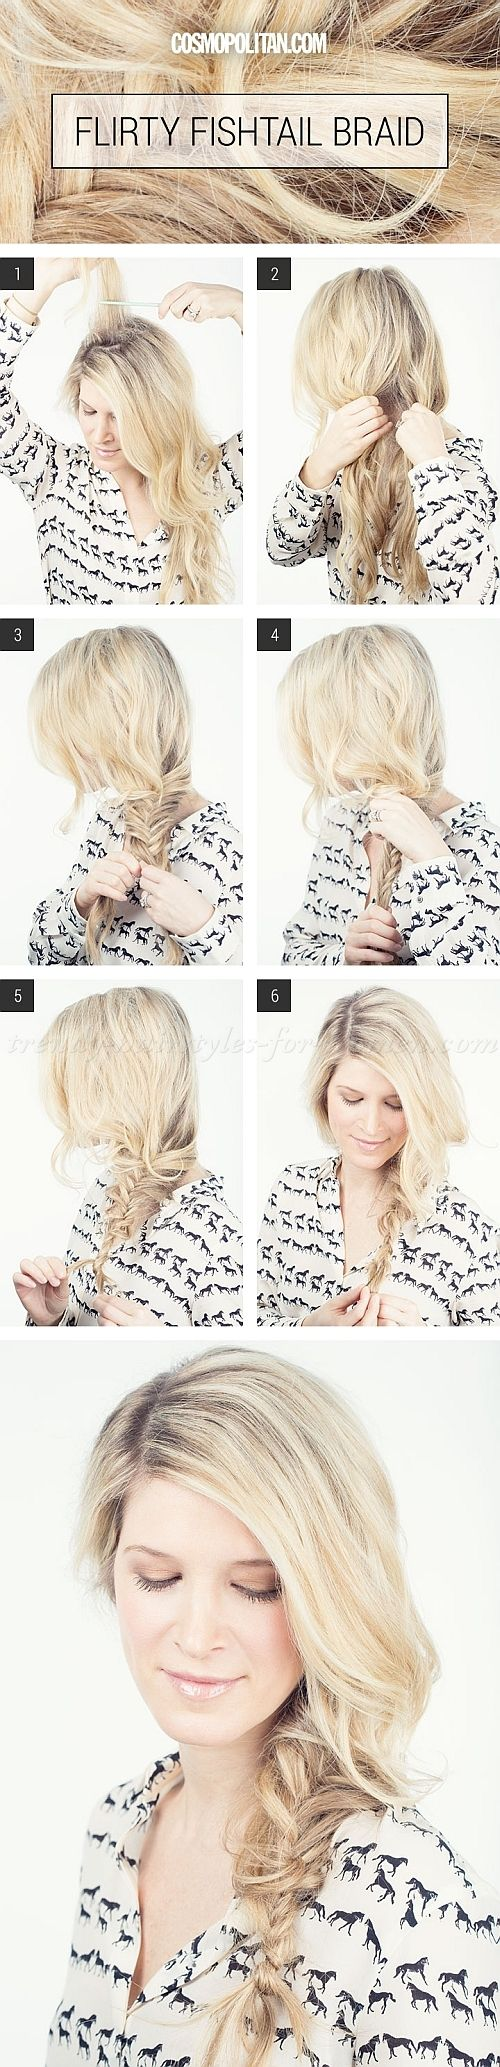 83 best hairstyle tutorials images on Pinterest | Cute hairstyles ...